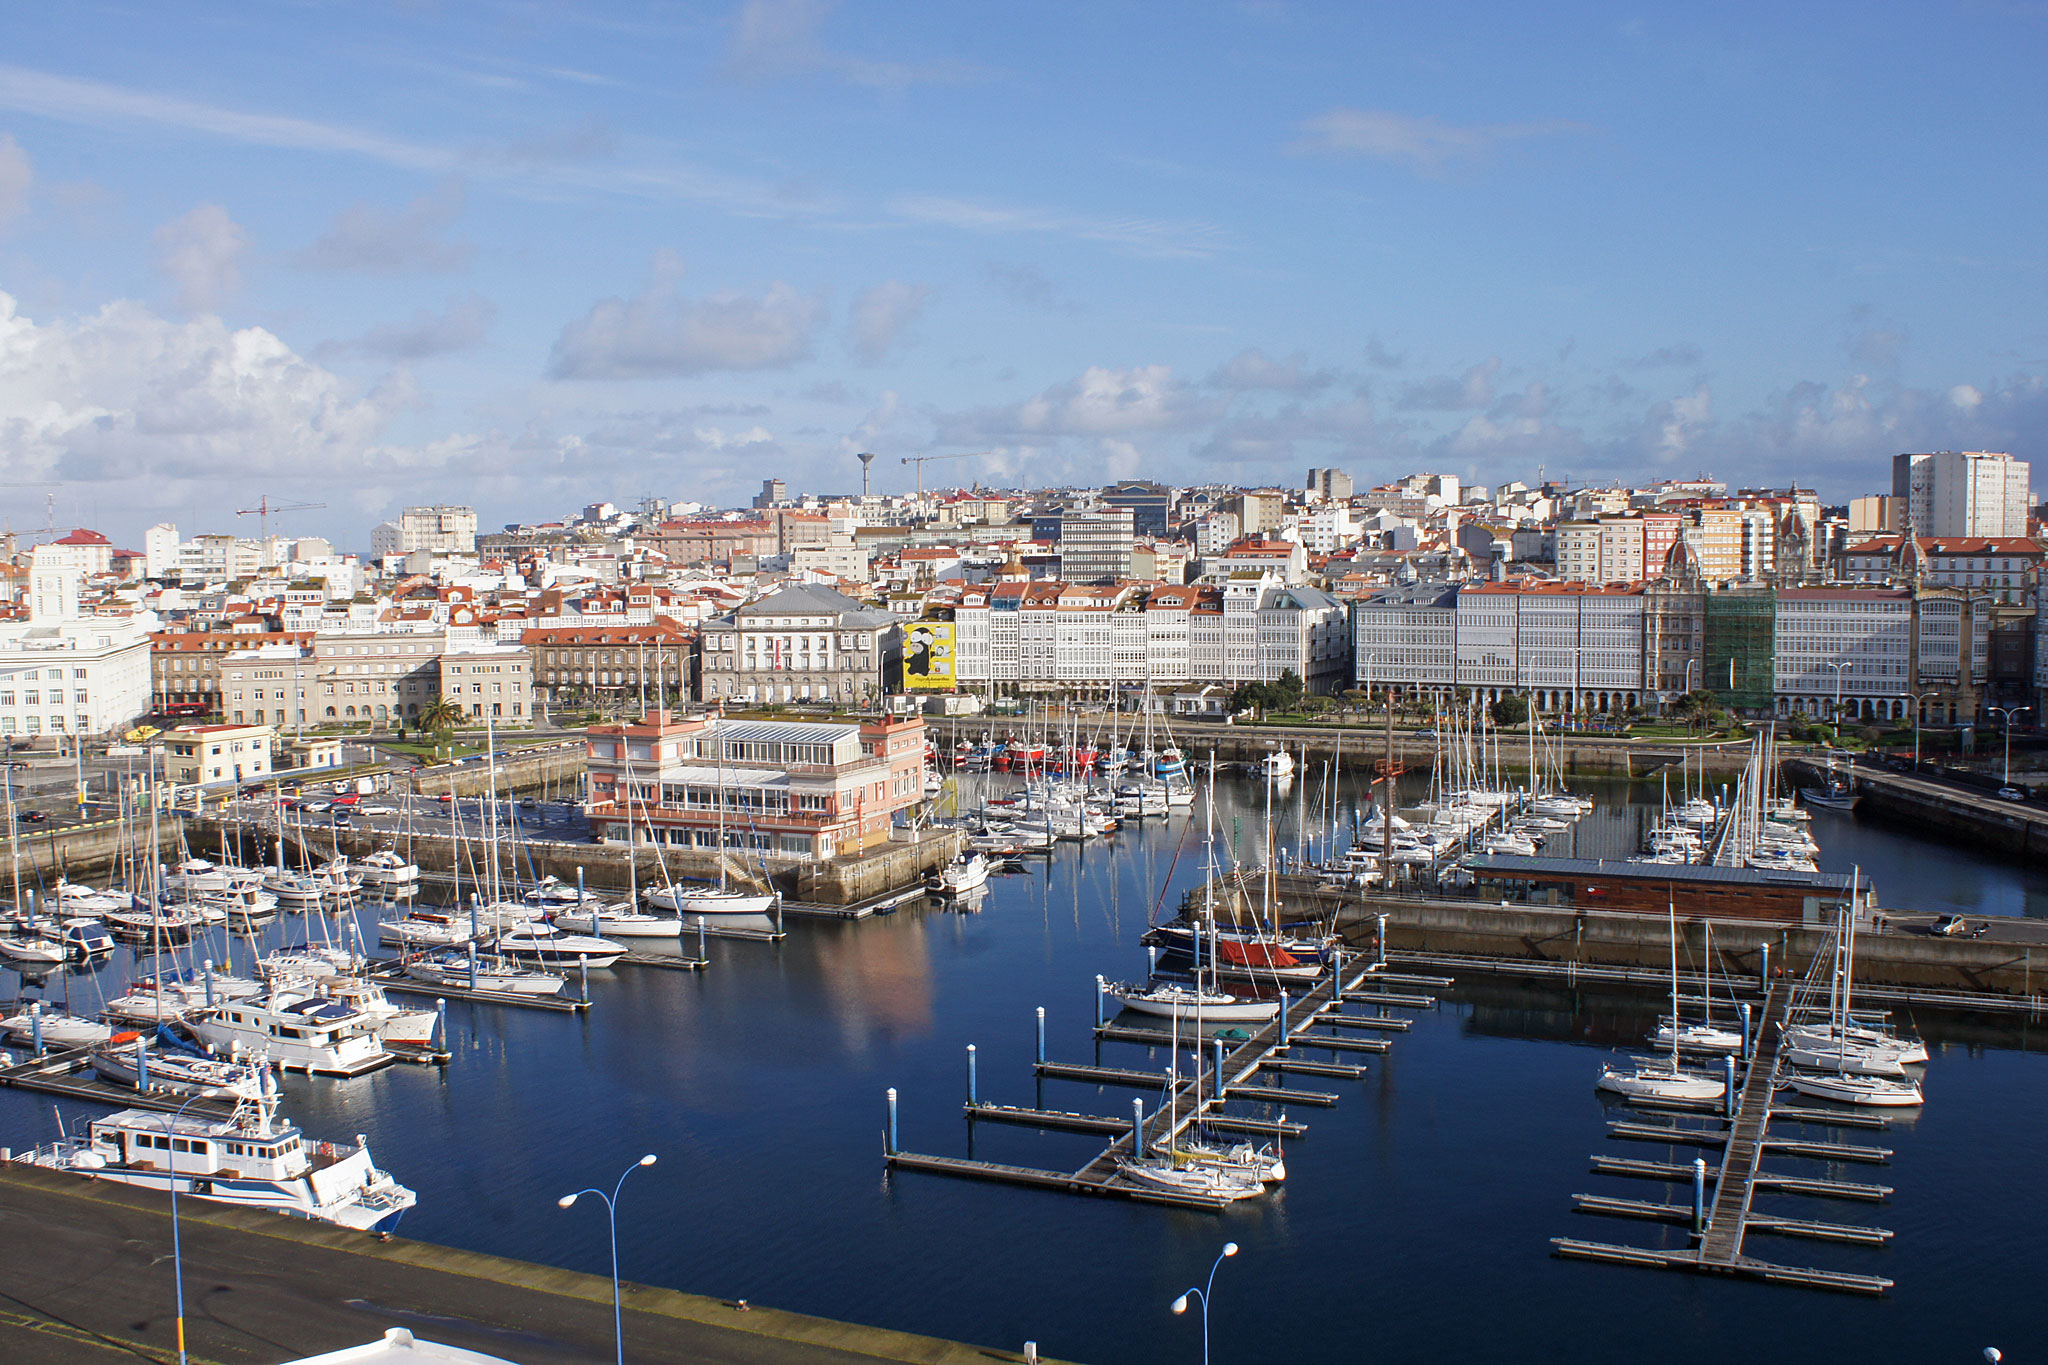 La Coruna Spain  city pictures gallery : La Coruna Spain